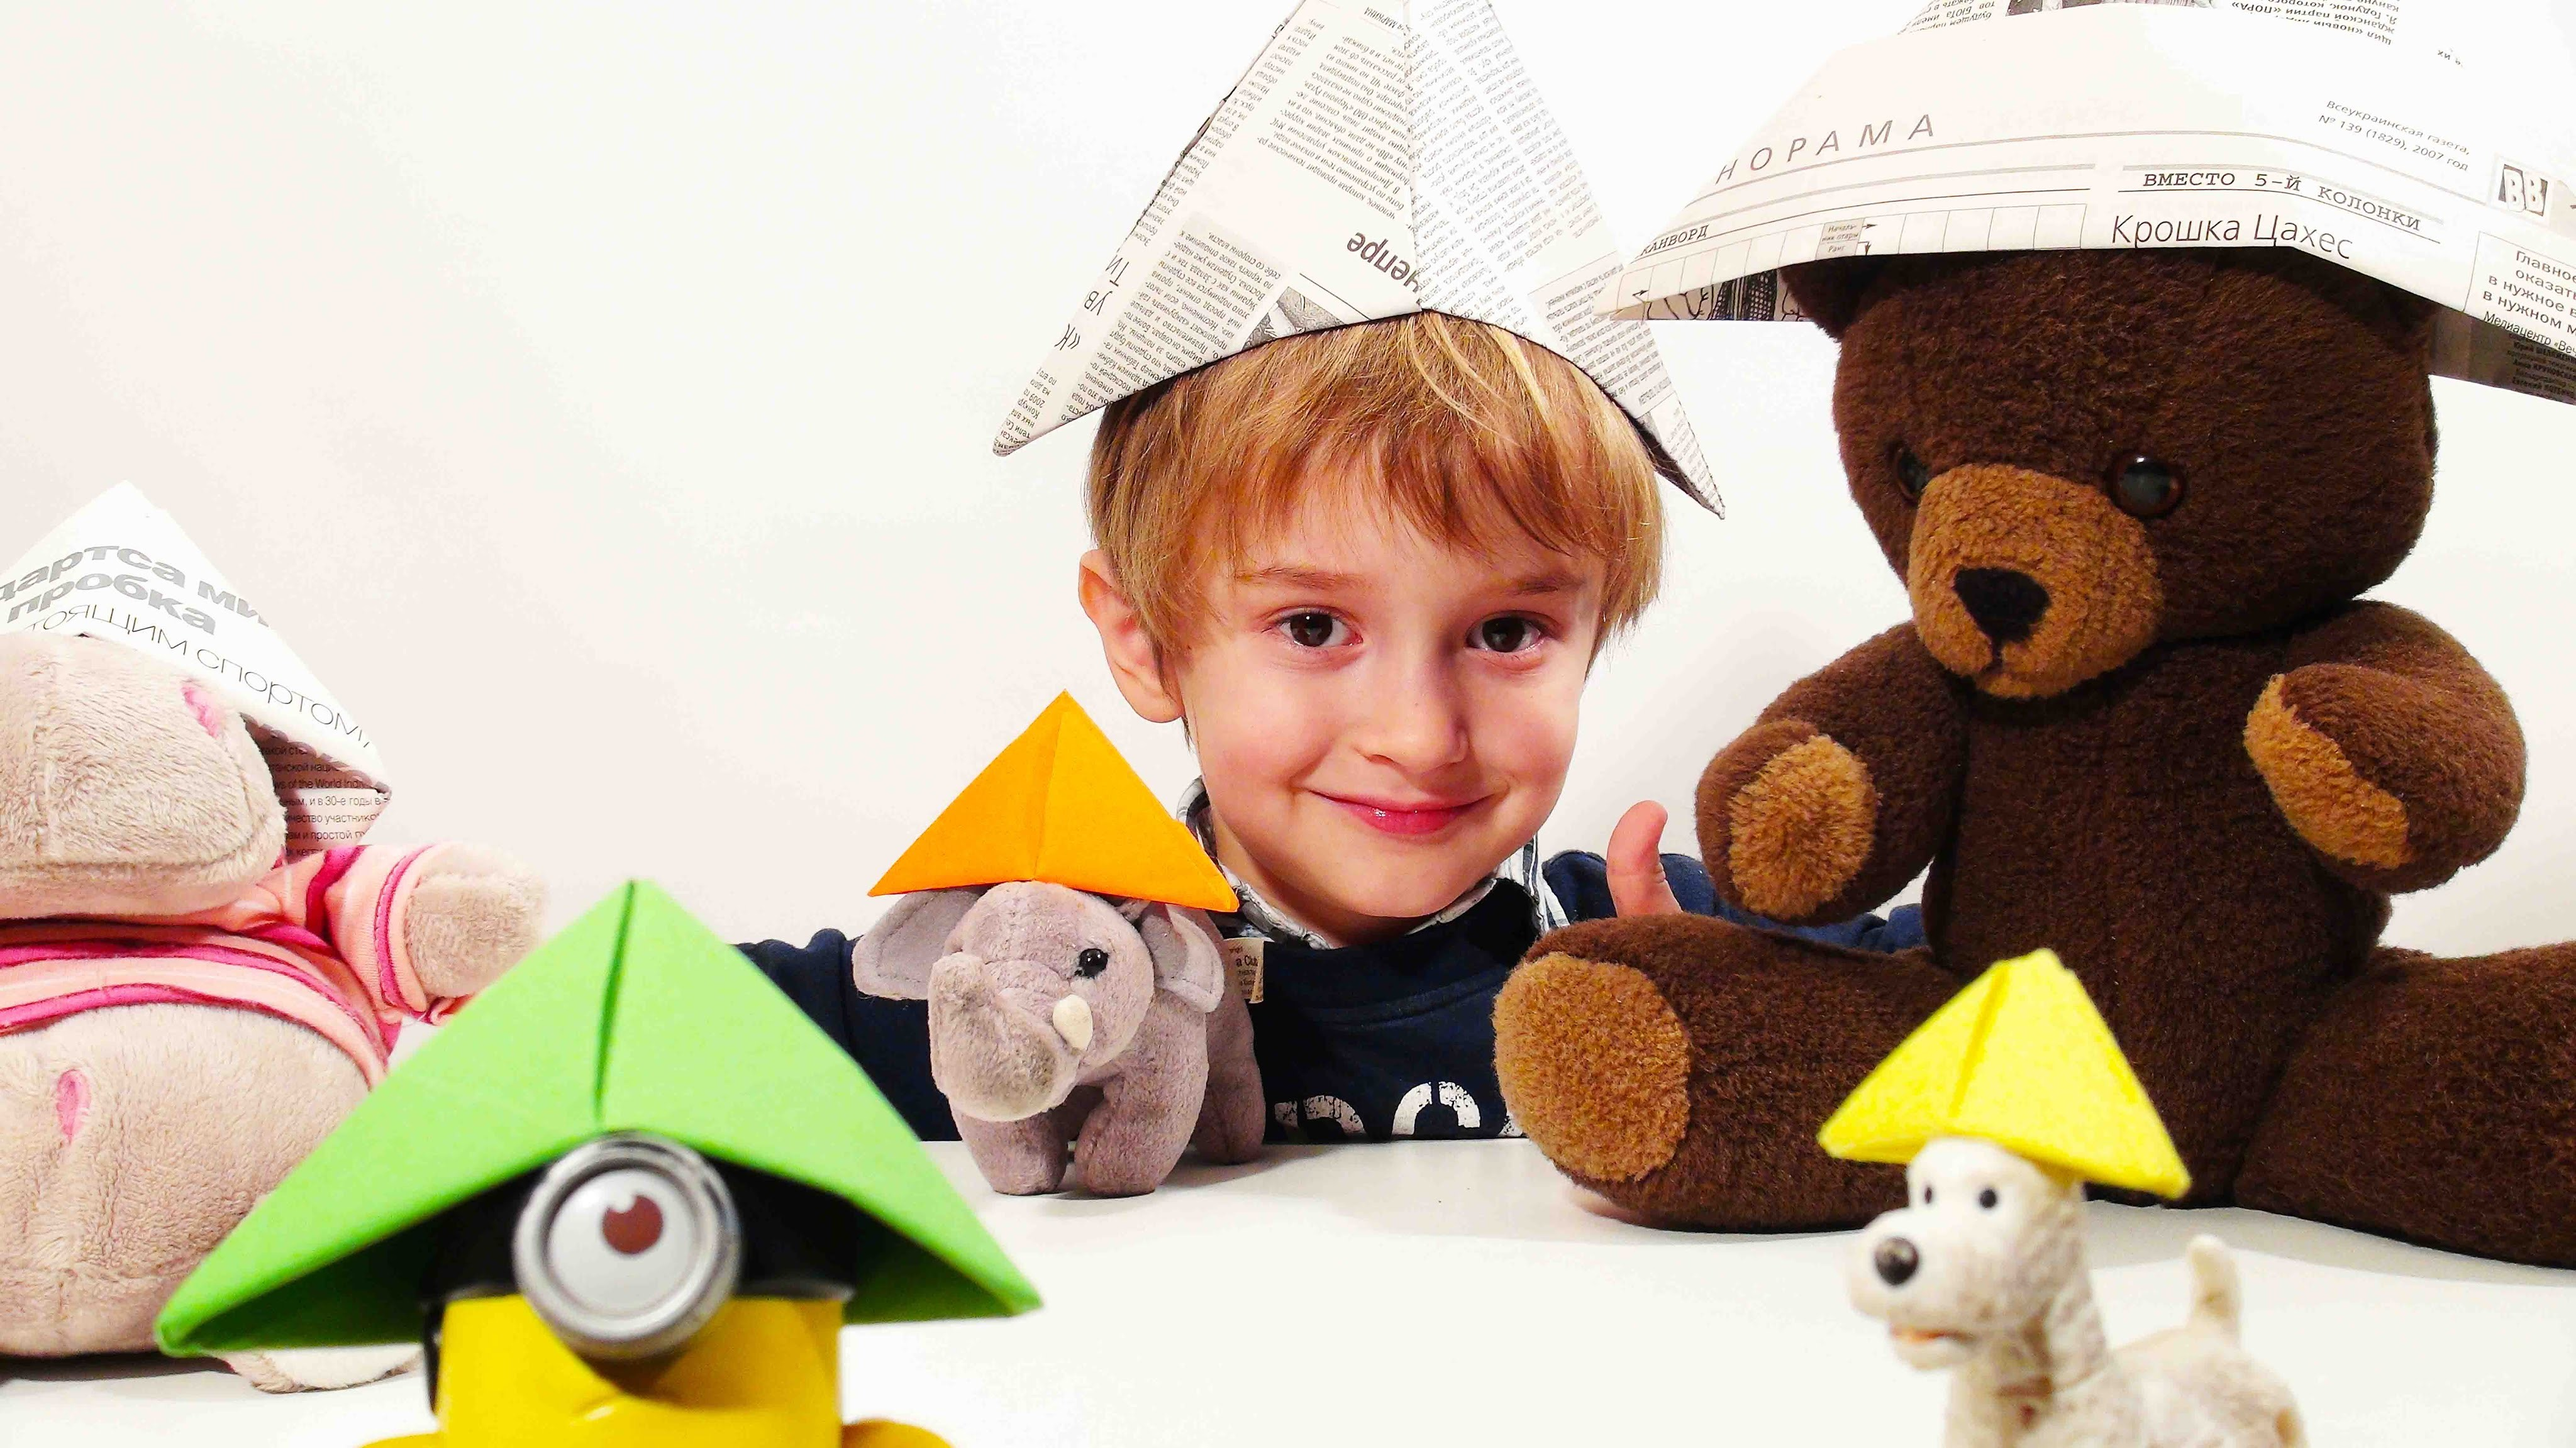 ORIGAMI CAP. Easy origami for kids. Craft for kids. Оrigami ideas for kids